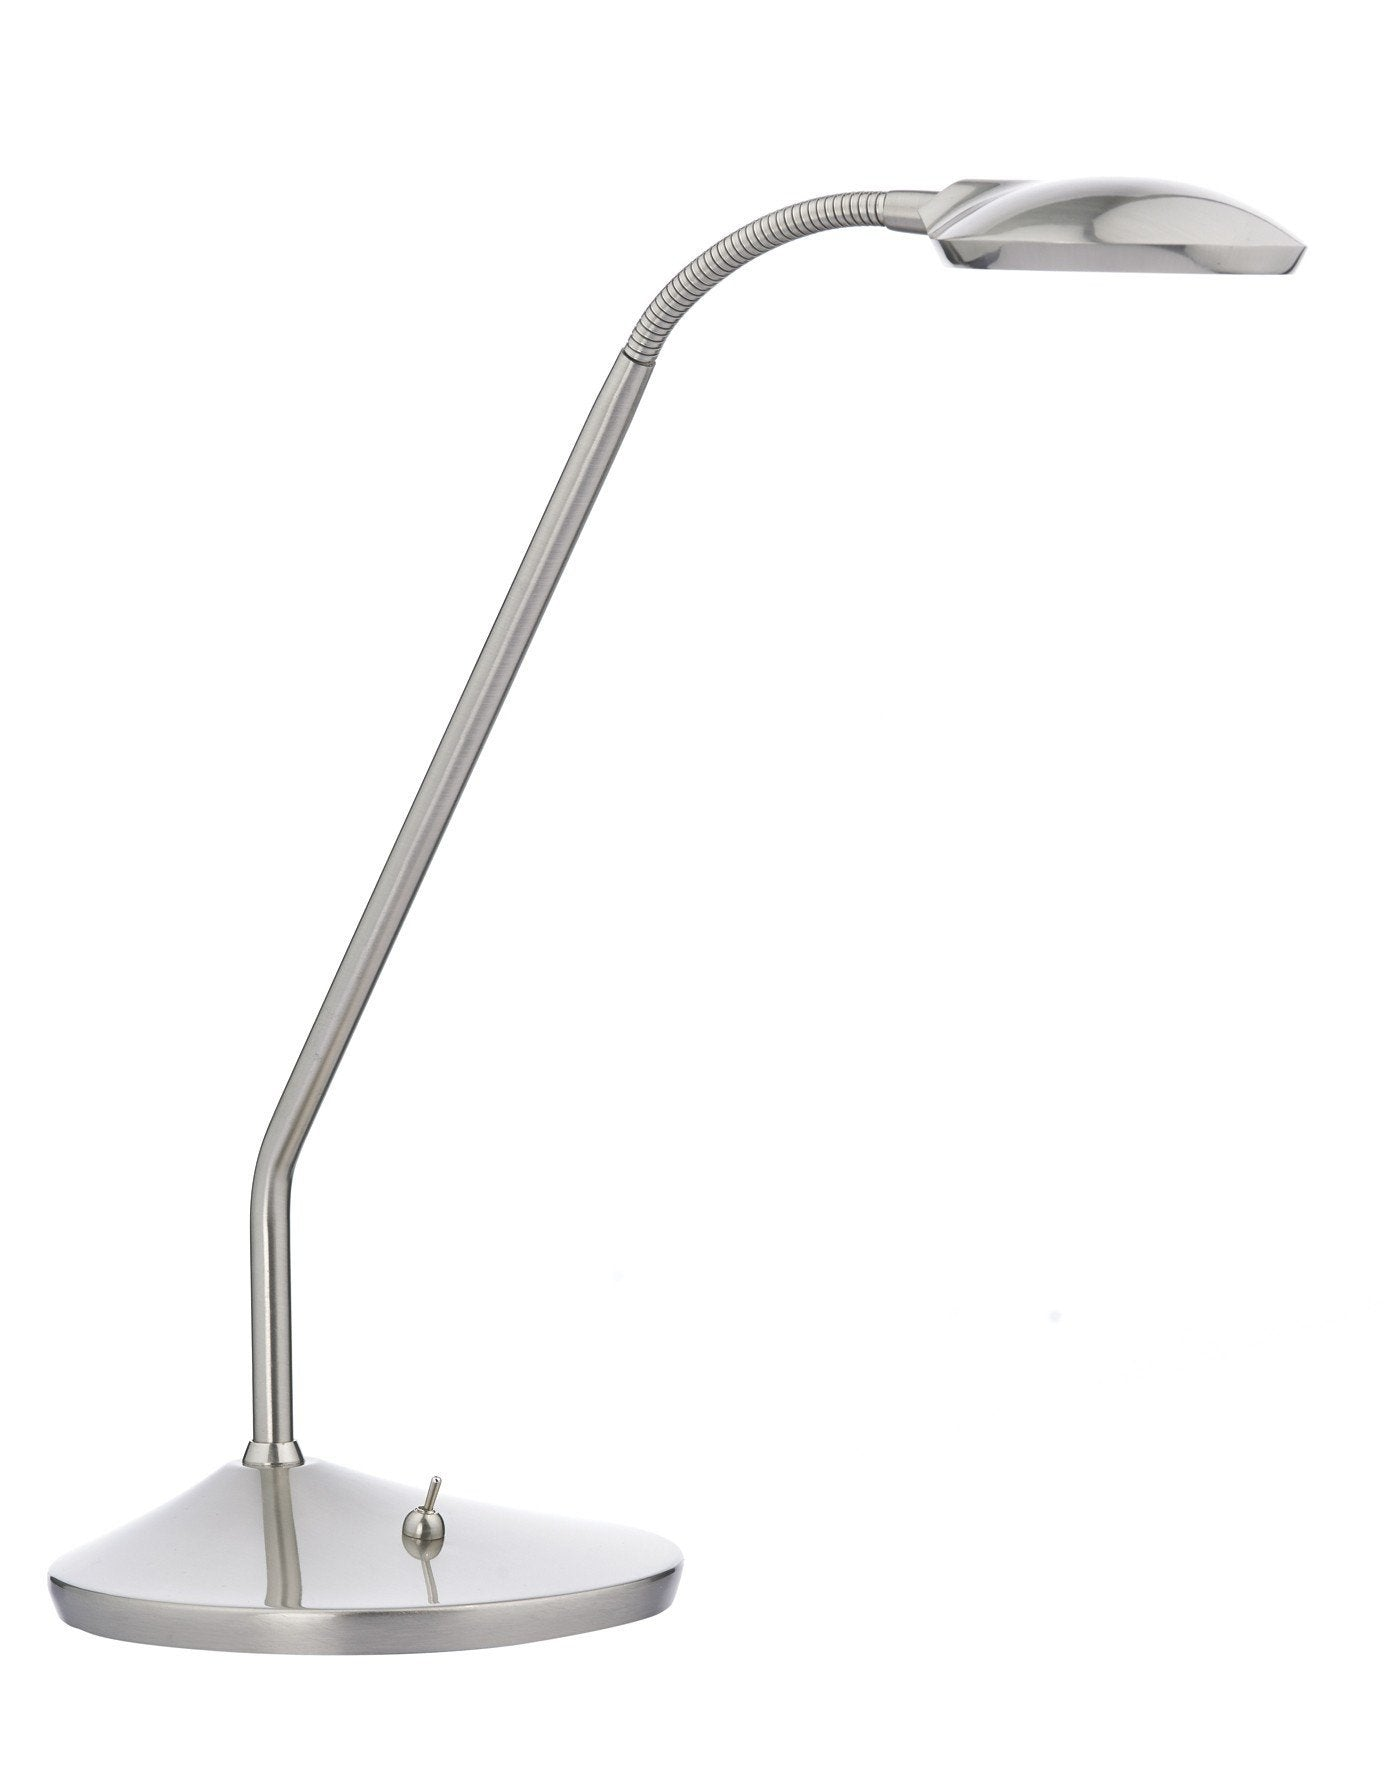 Wellington LED Desk Lamp in Satin Chrome - London Lighting - 1